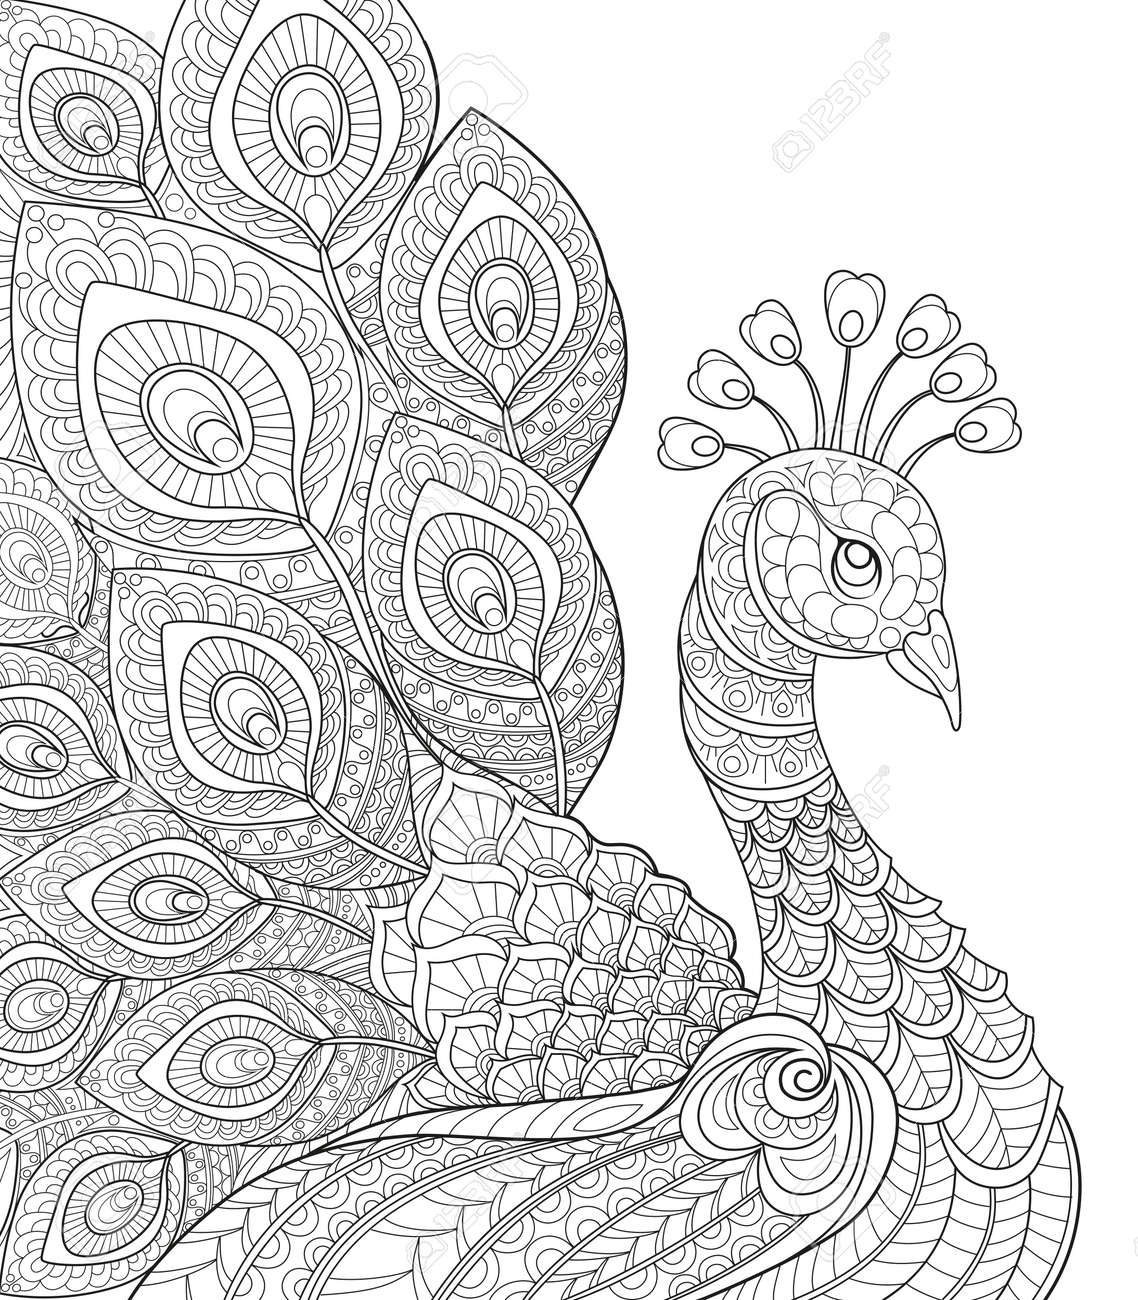 Adult antistress coloring page black and white hand drawn doodle for coloring book